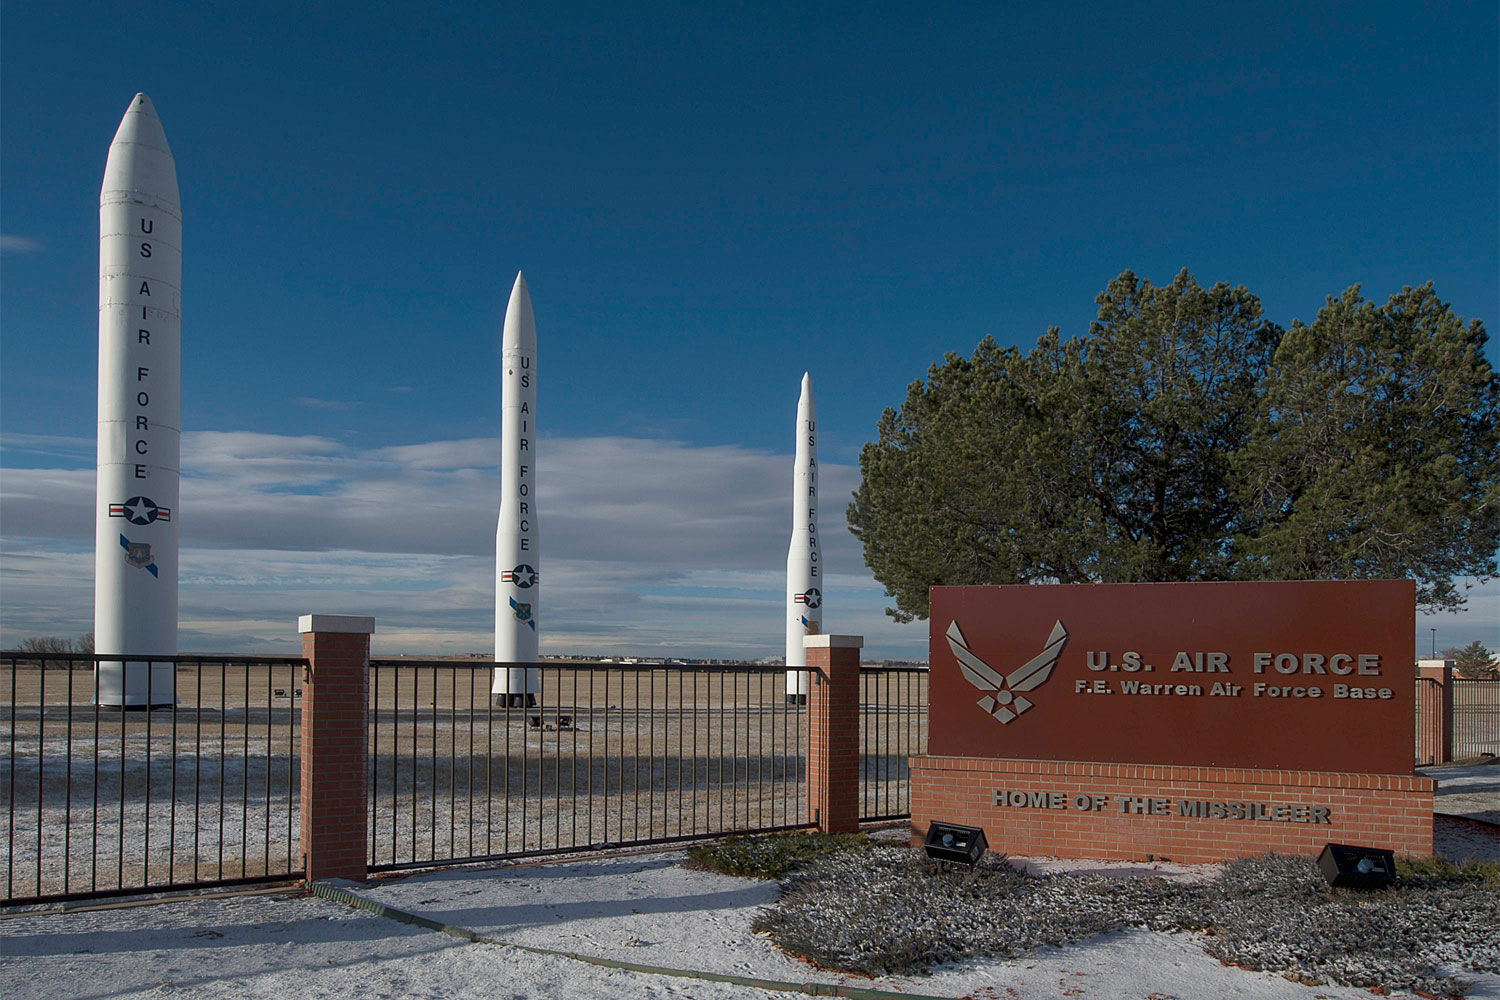 F.E. Warren Air Force Base Wants to Develop 74 Acres